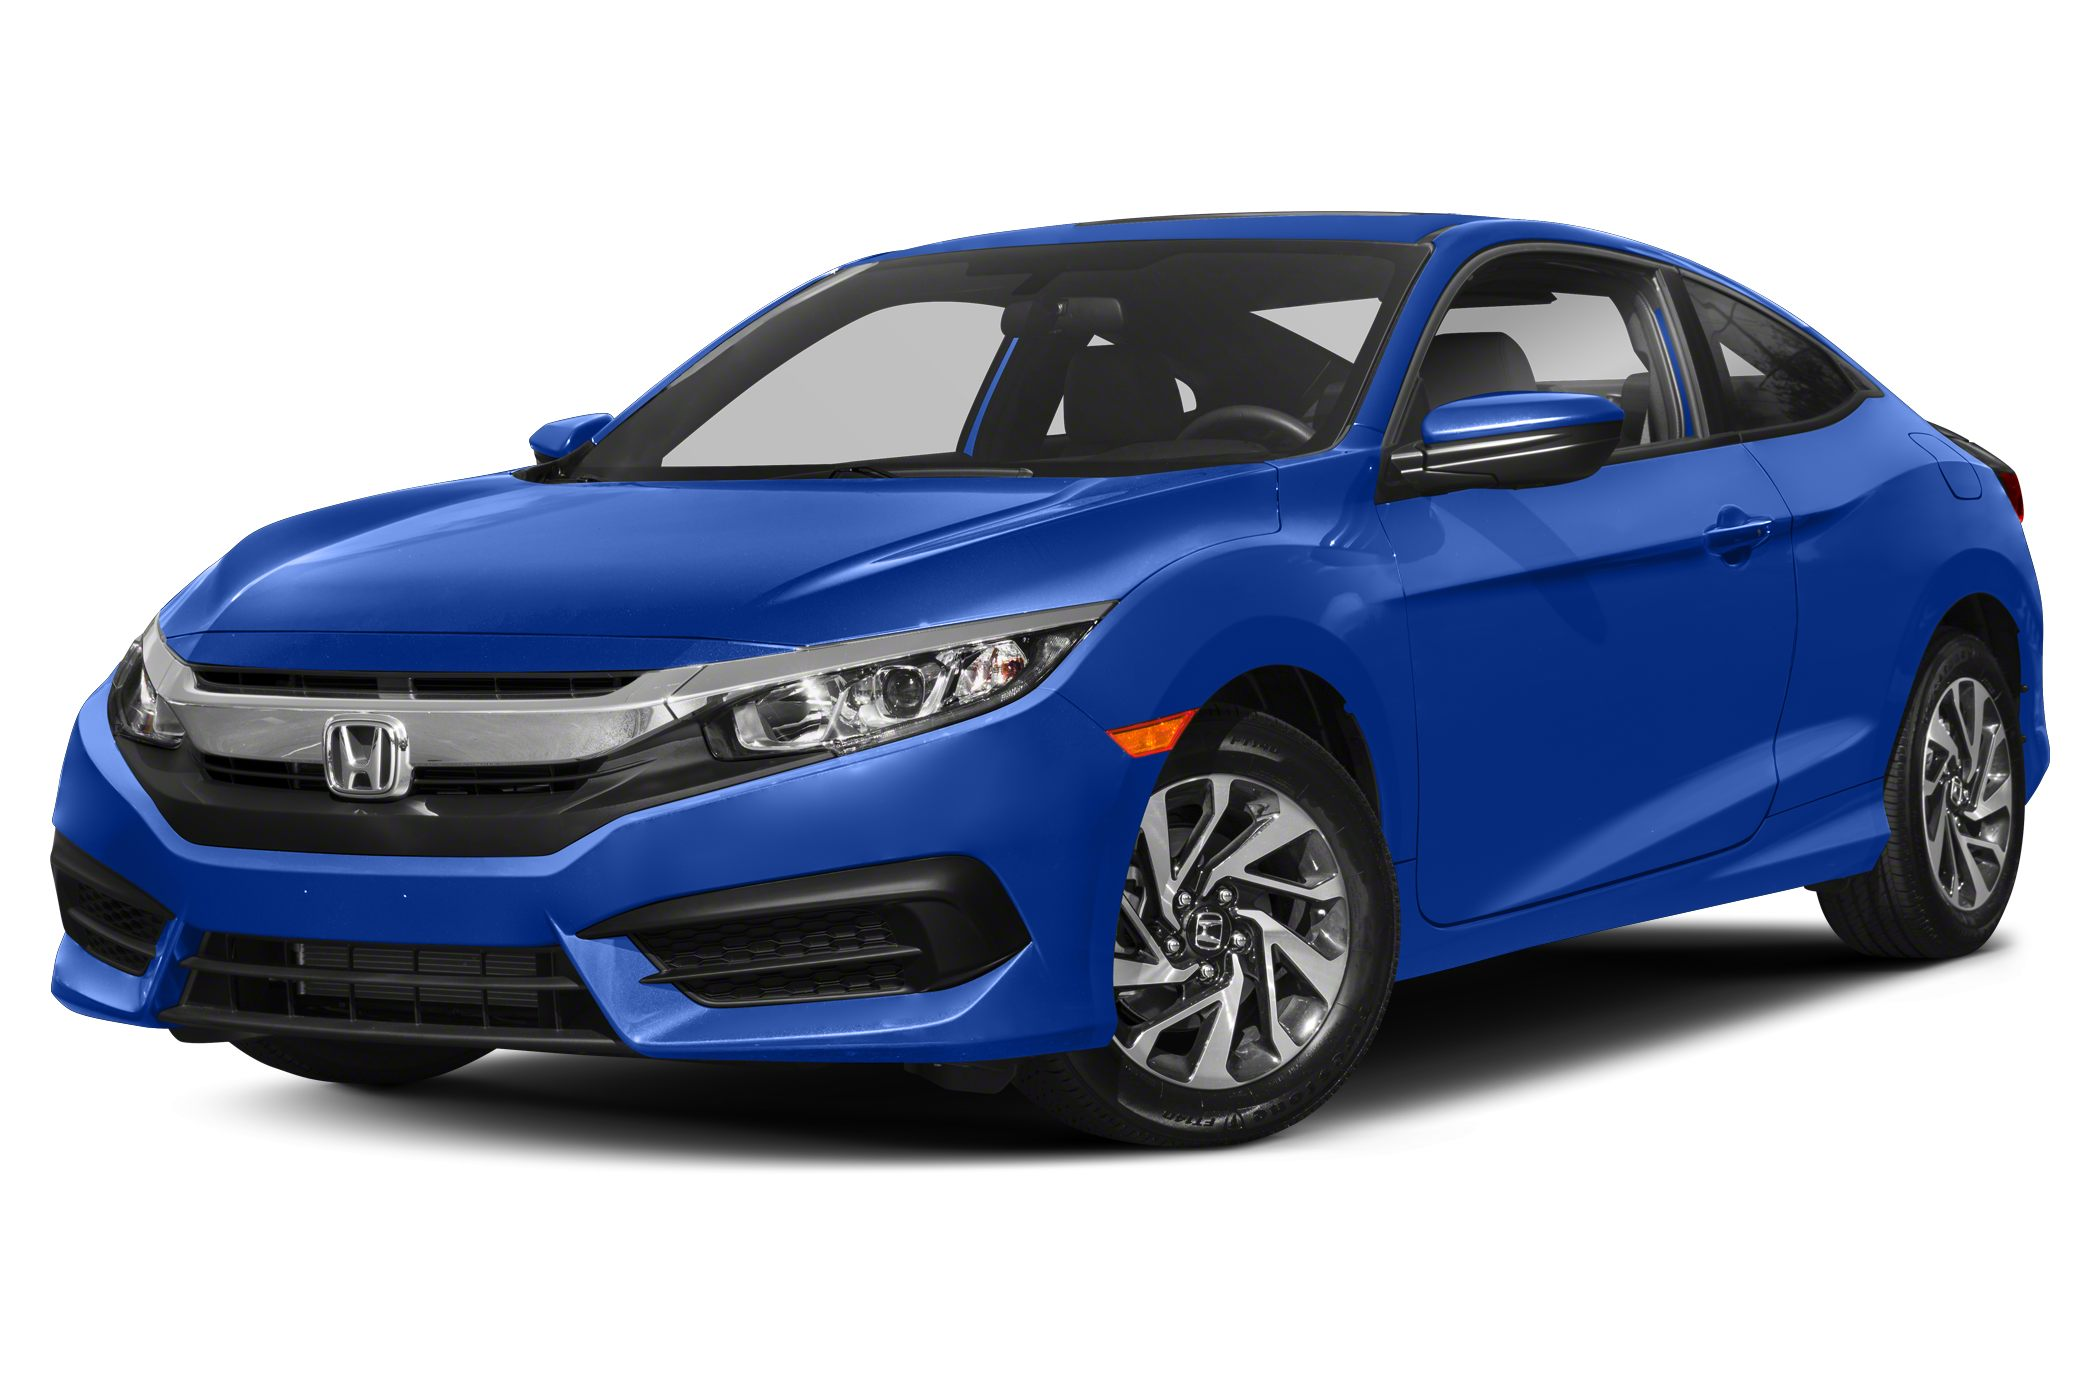 2018 Honda Civic LX-P 2dr Coupe